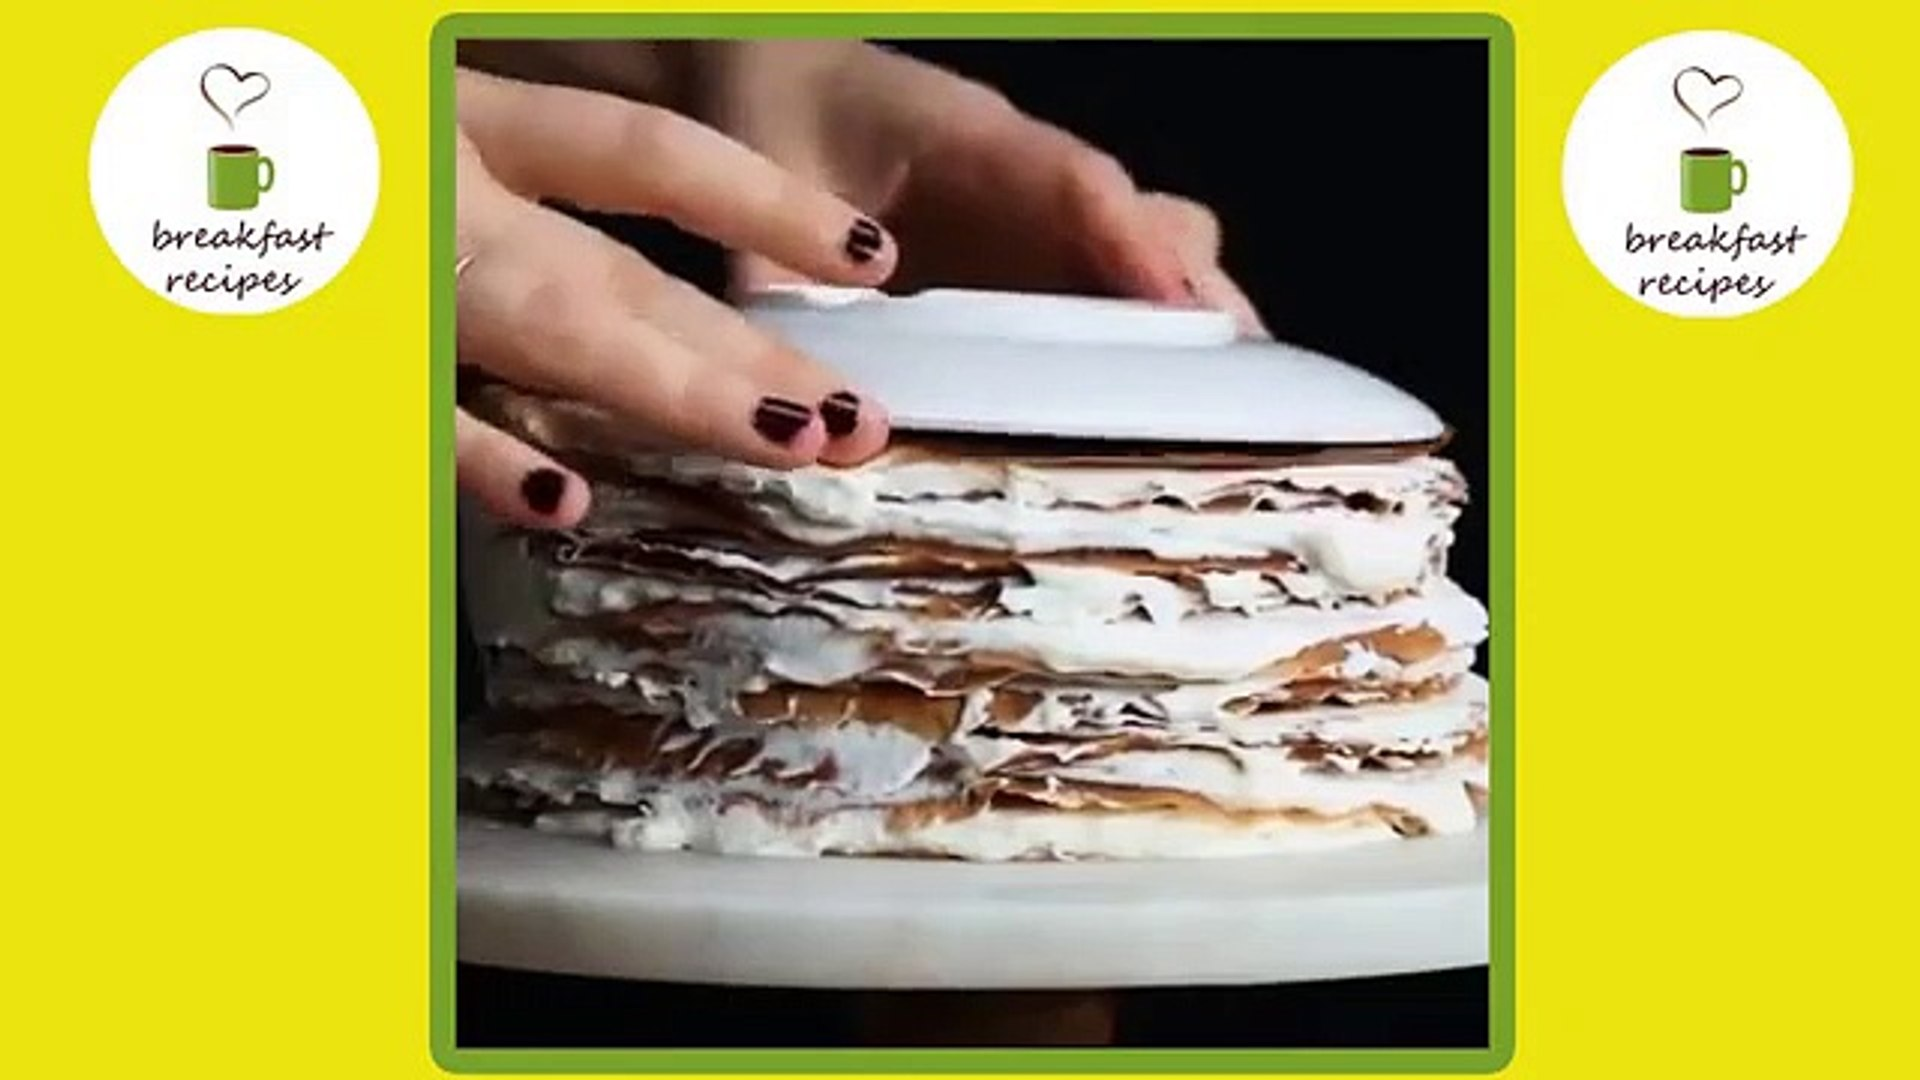 New Top Tasty Desserts Recipes|Best Desserts Recipes And Cake|Yummy #02